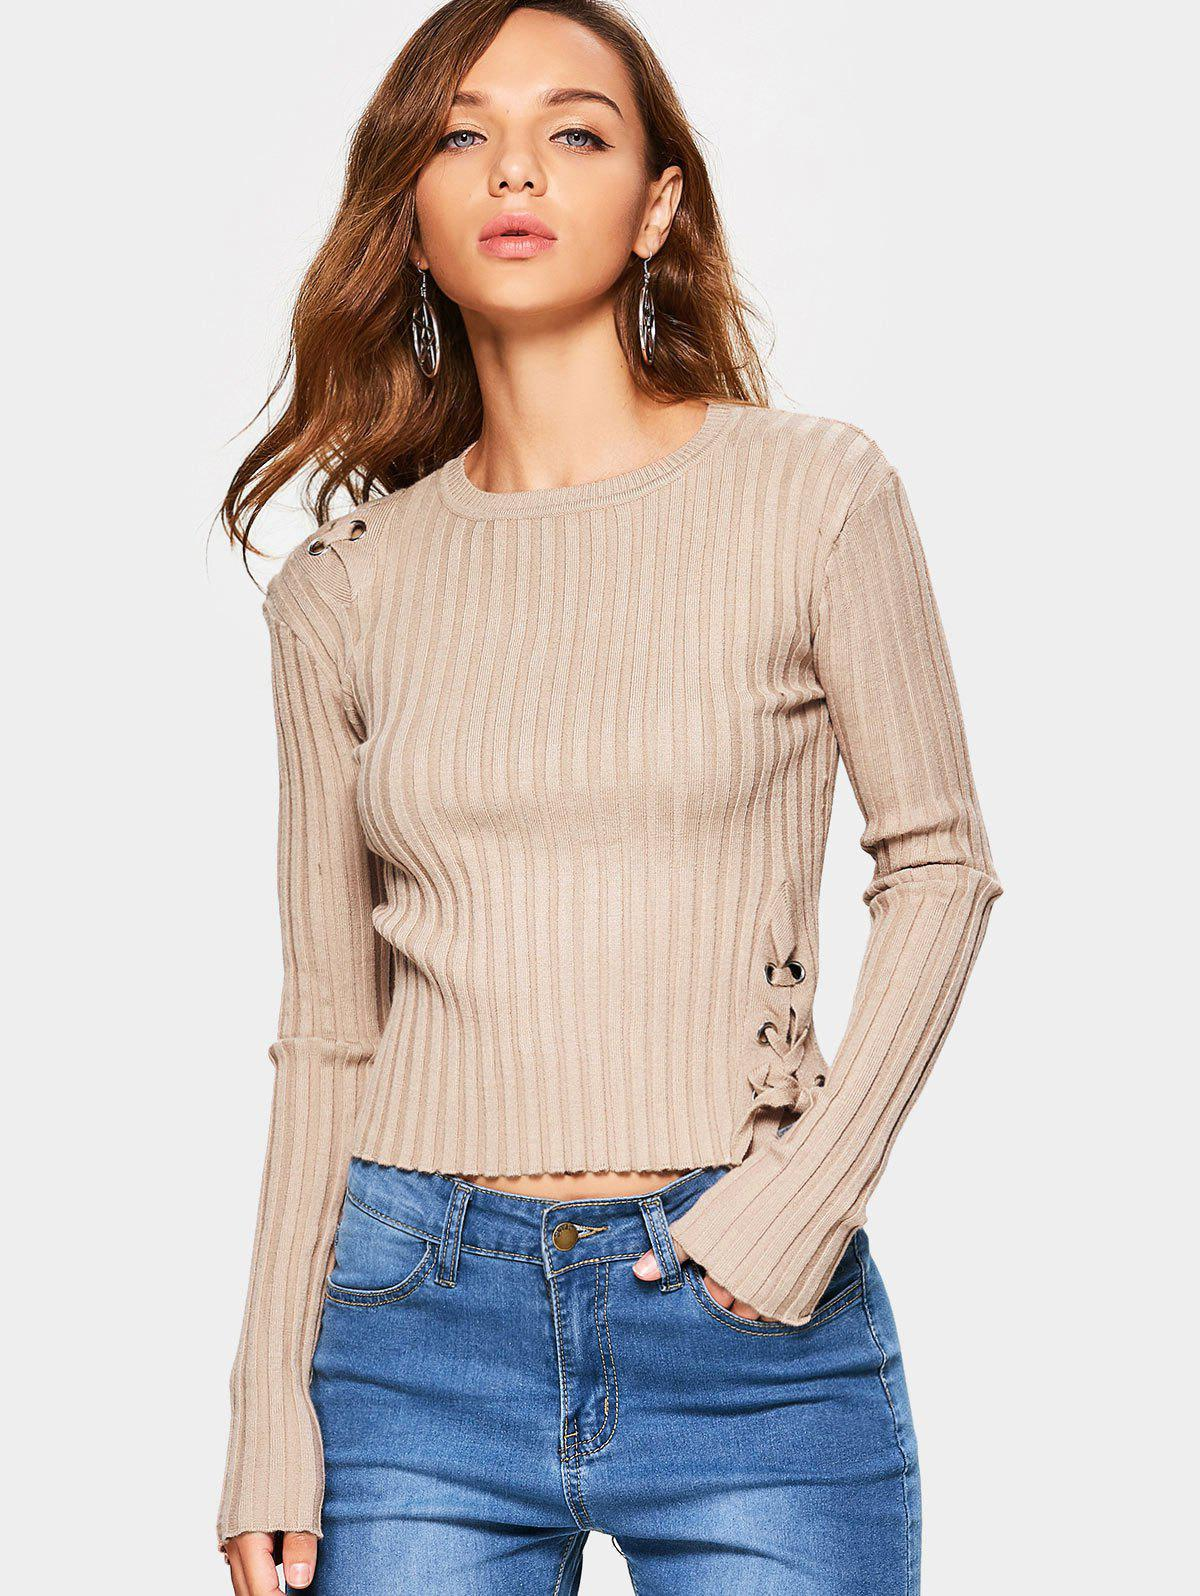 Ribbed Lace Up Sweater 221837303